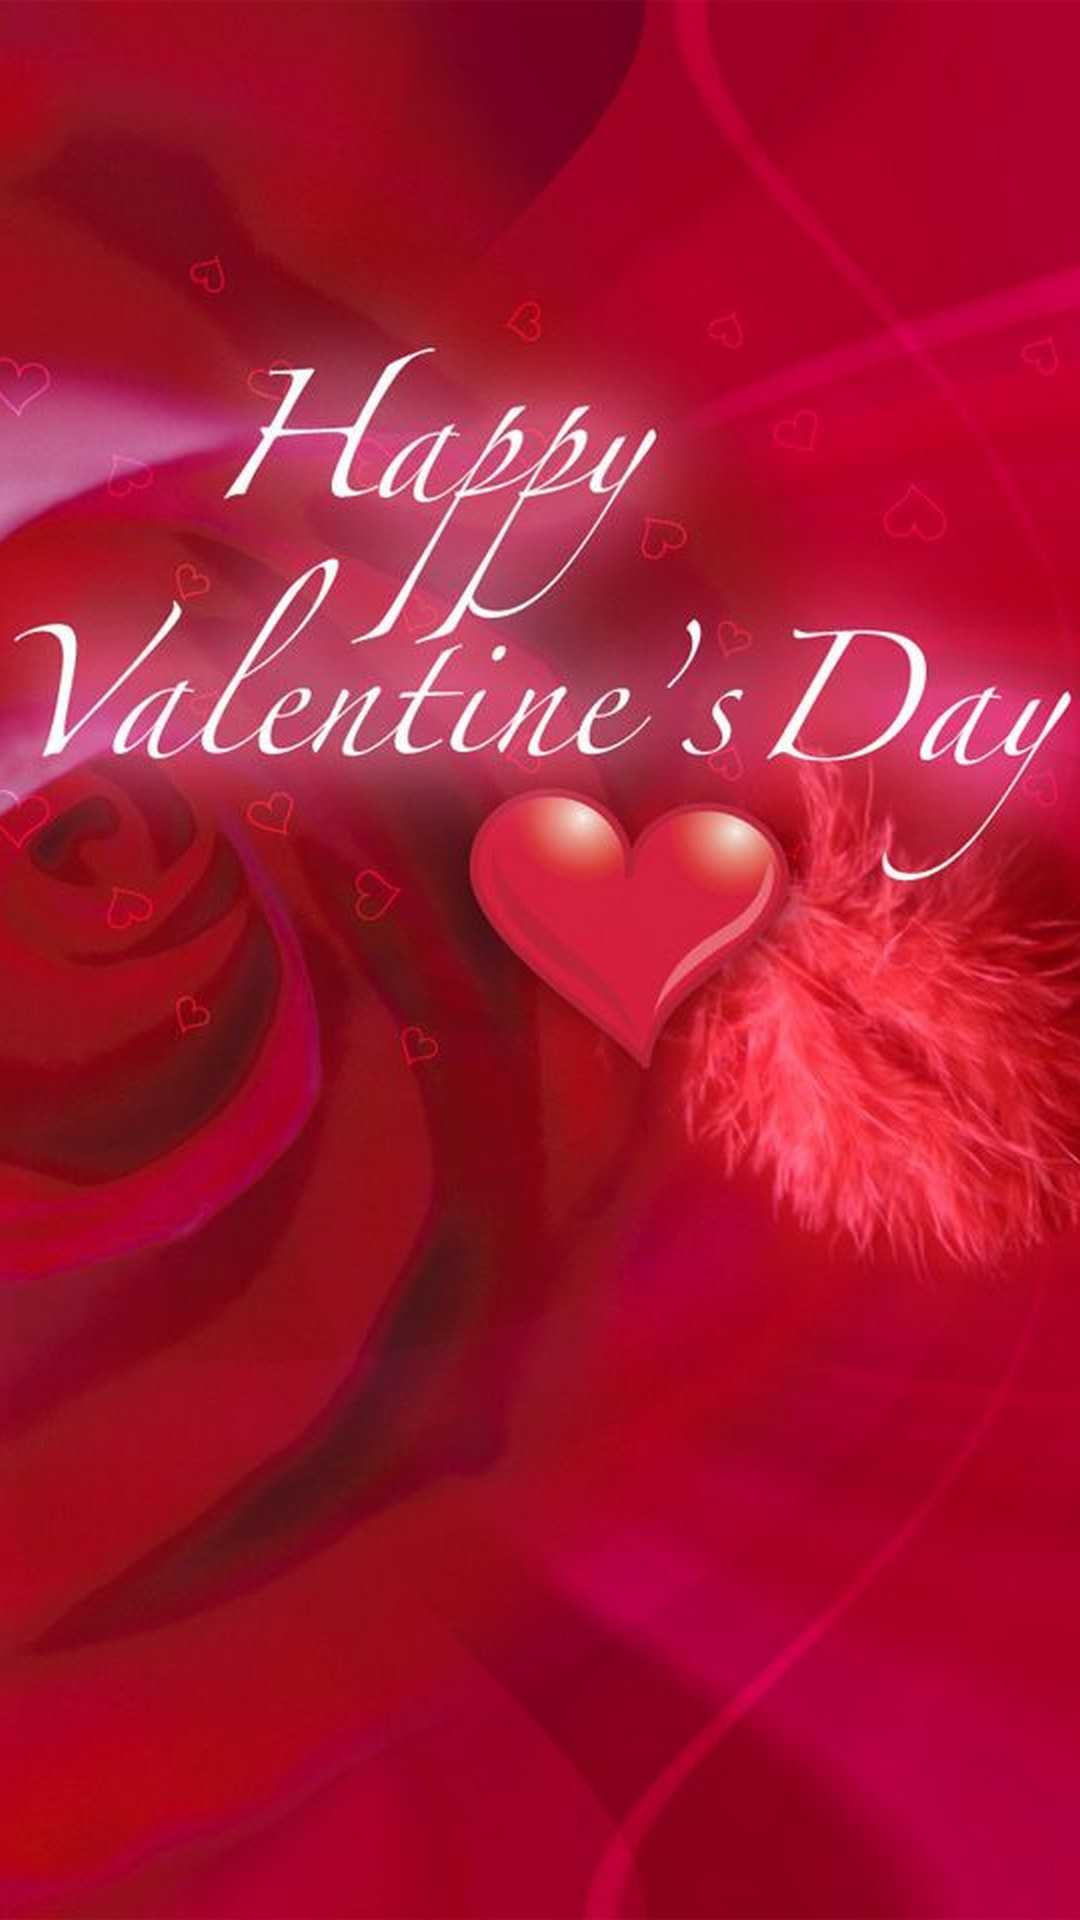 Happy Valentines Day Wallpaper iPhone